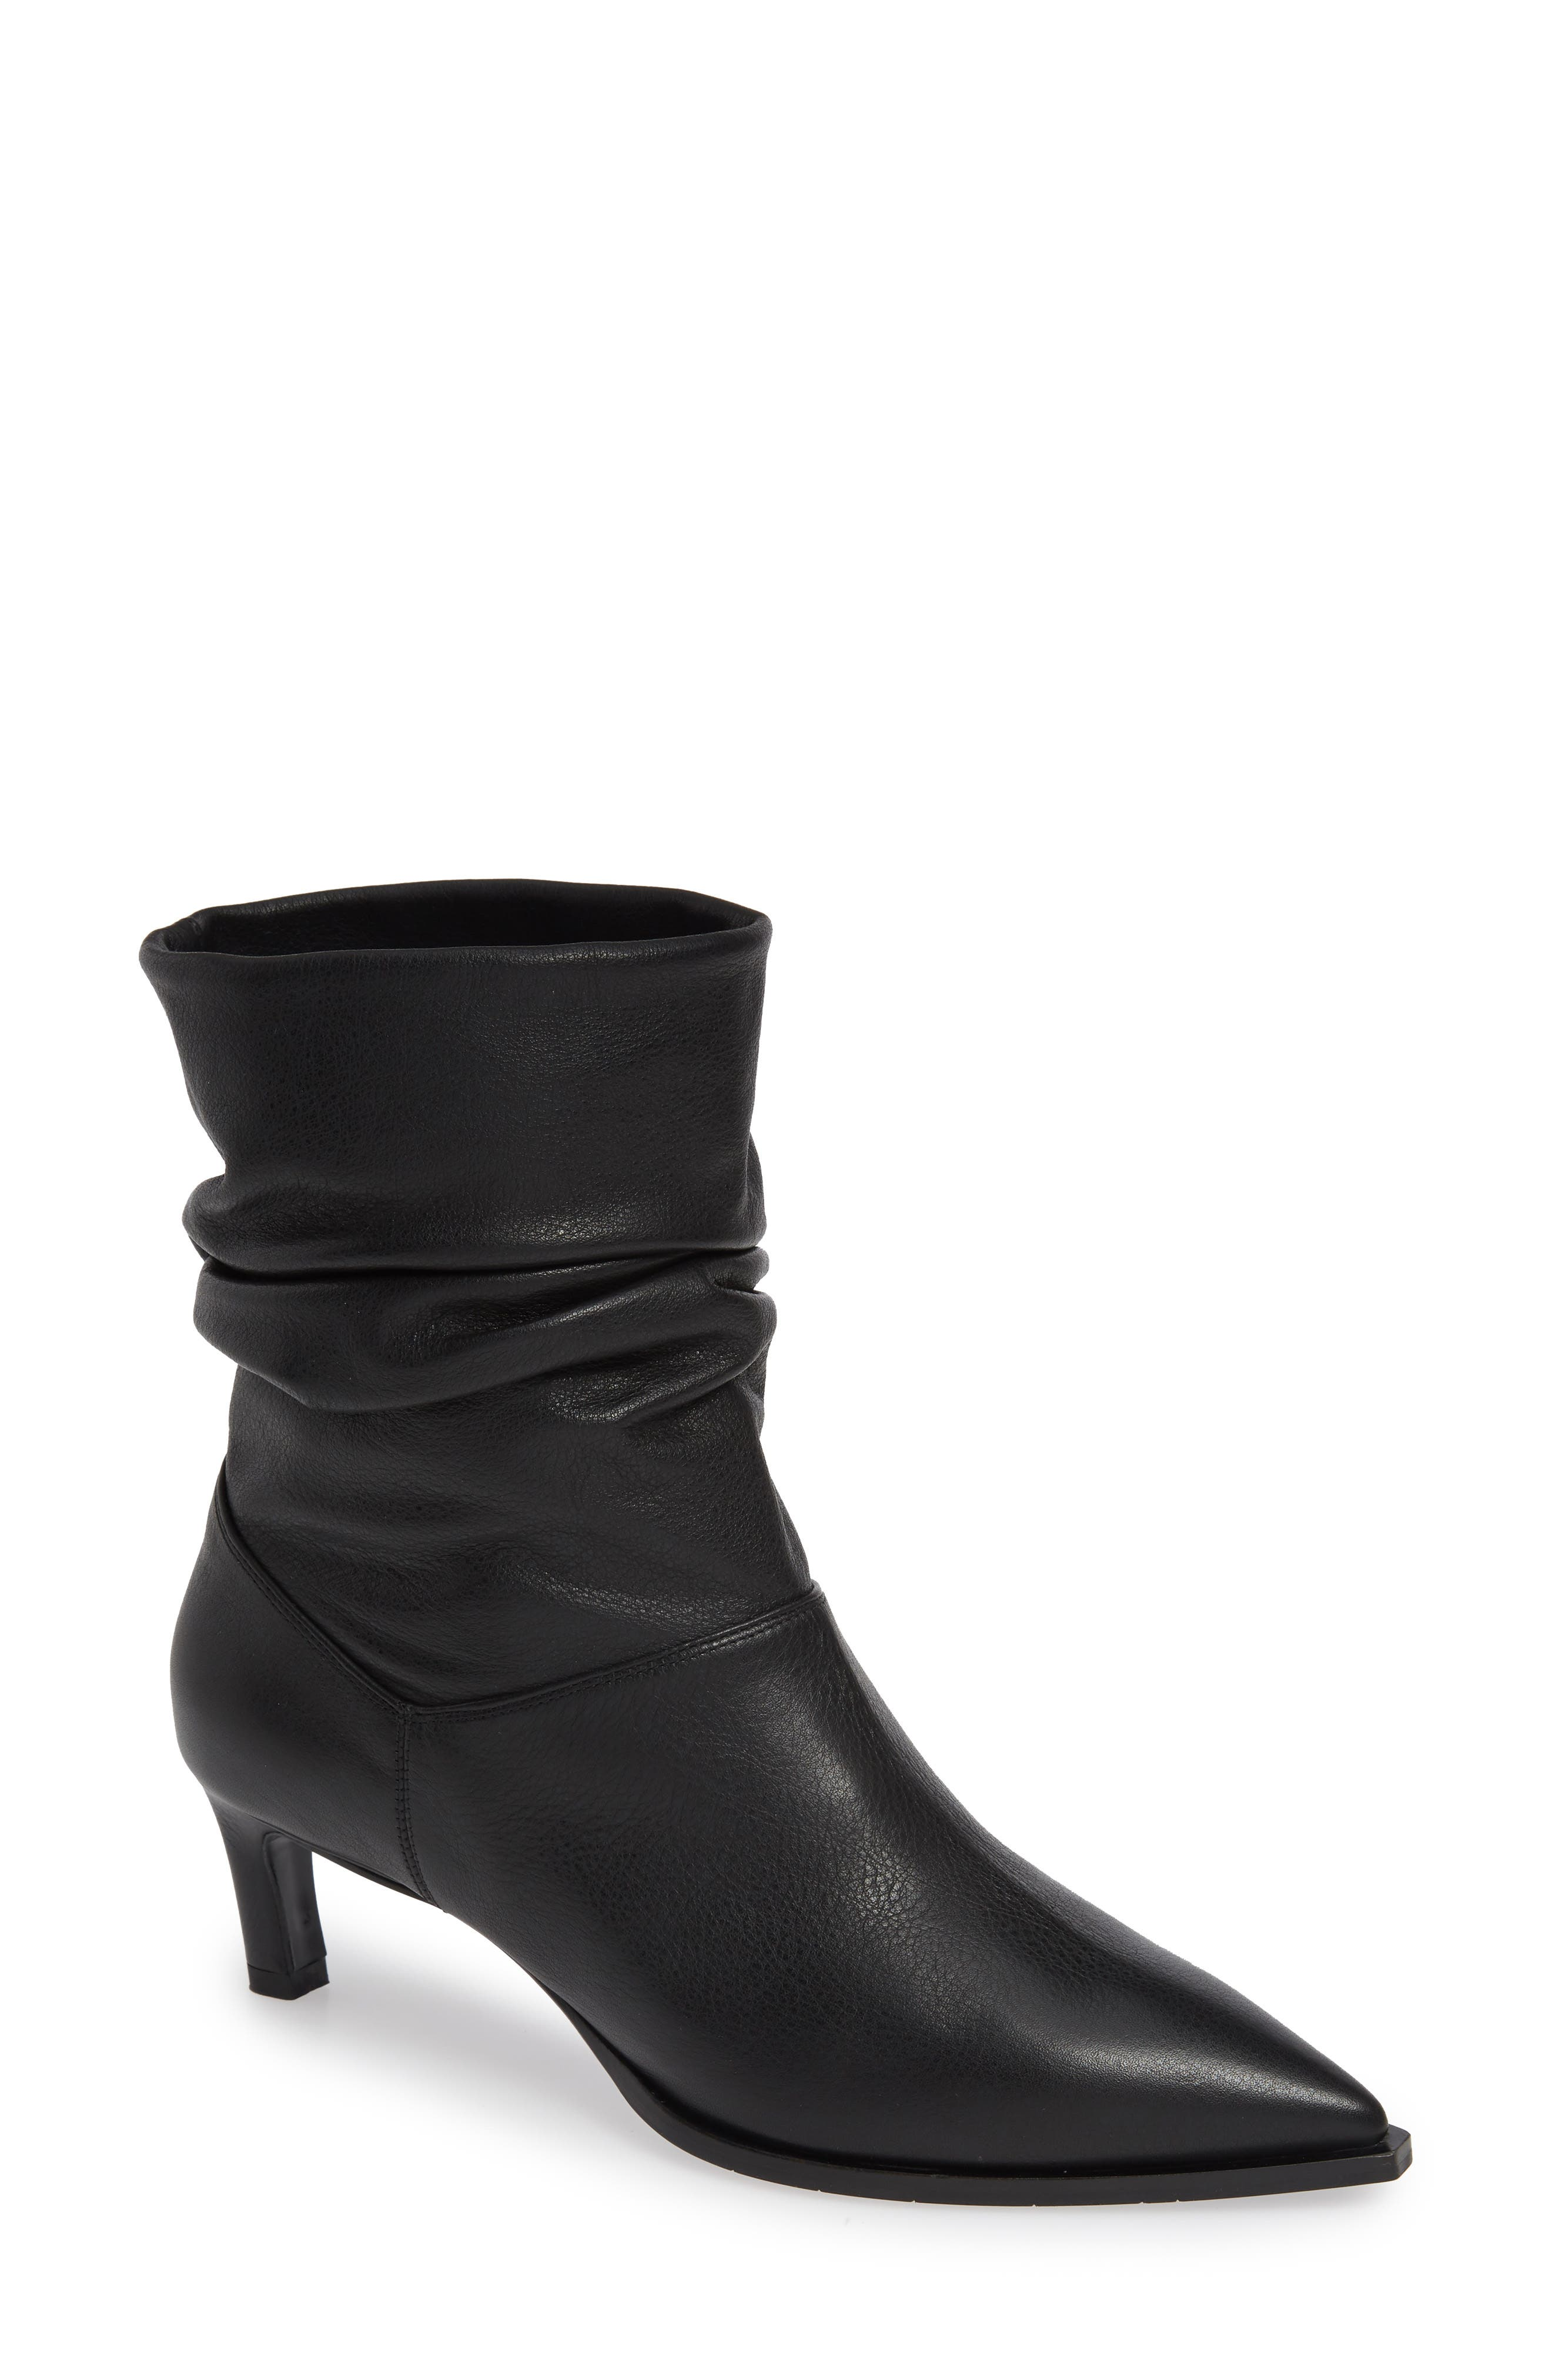 Aquatalia Maddy Water Resistant Slouch Boot- Black